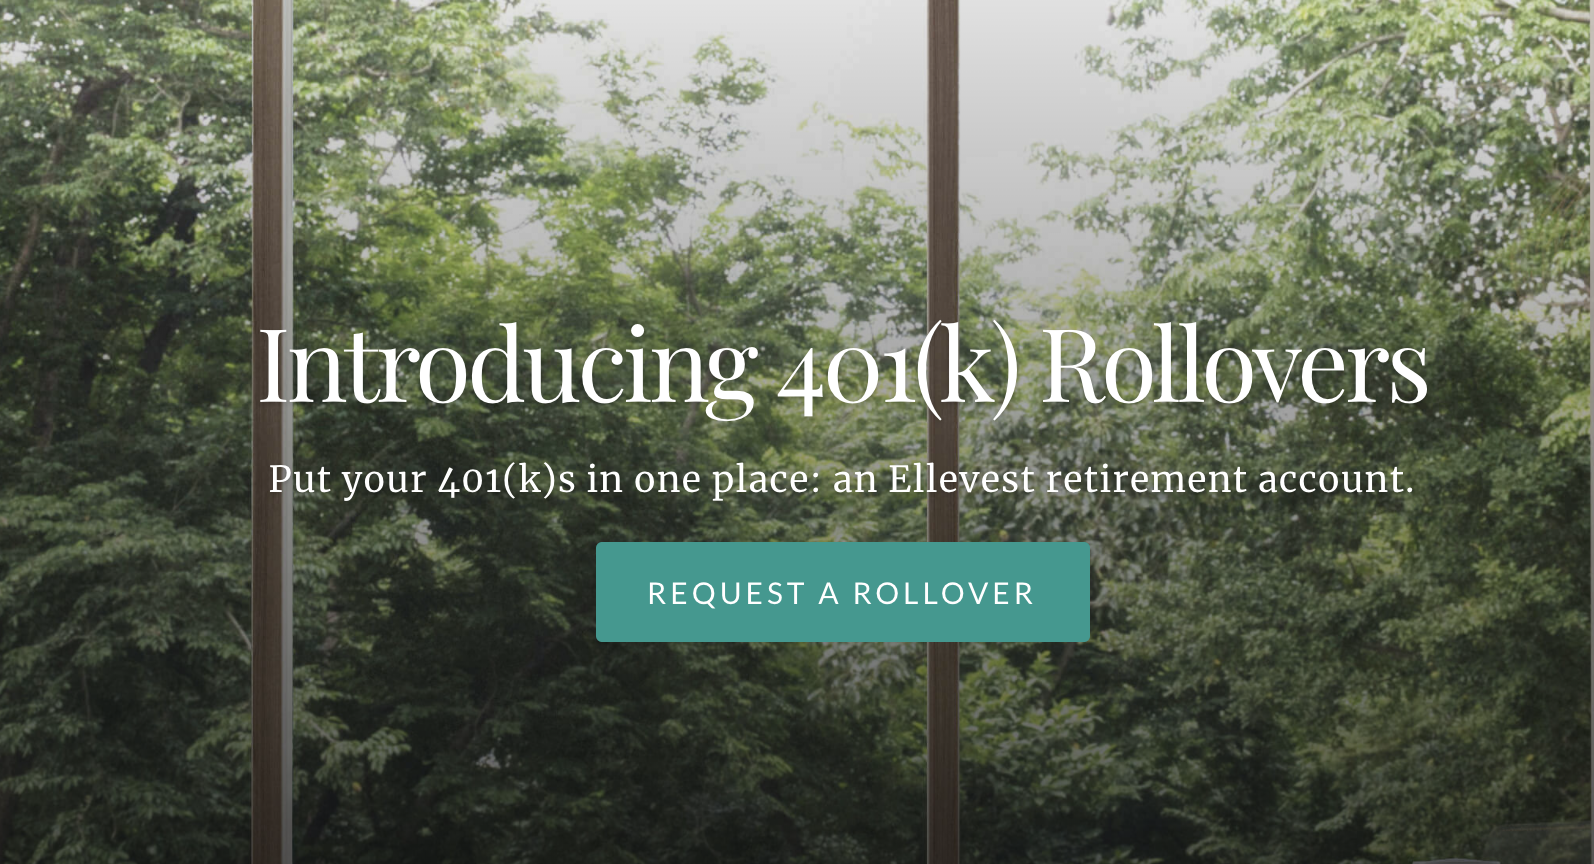 Click here to rollover your 401k Plan to Ellevest